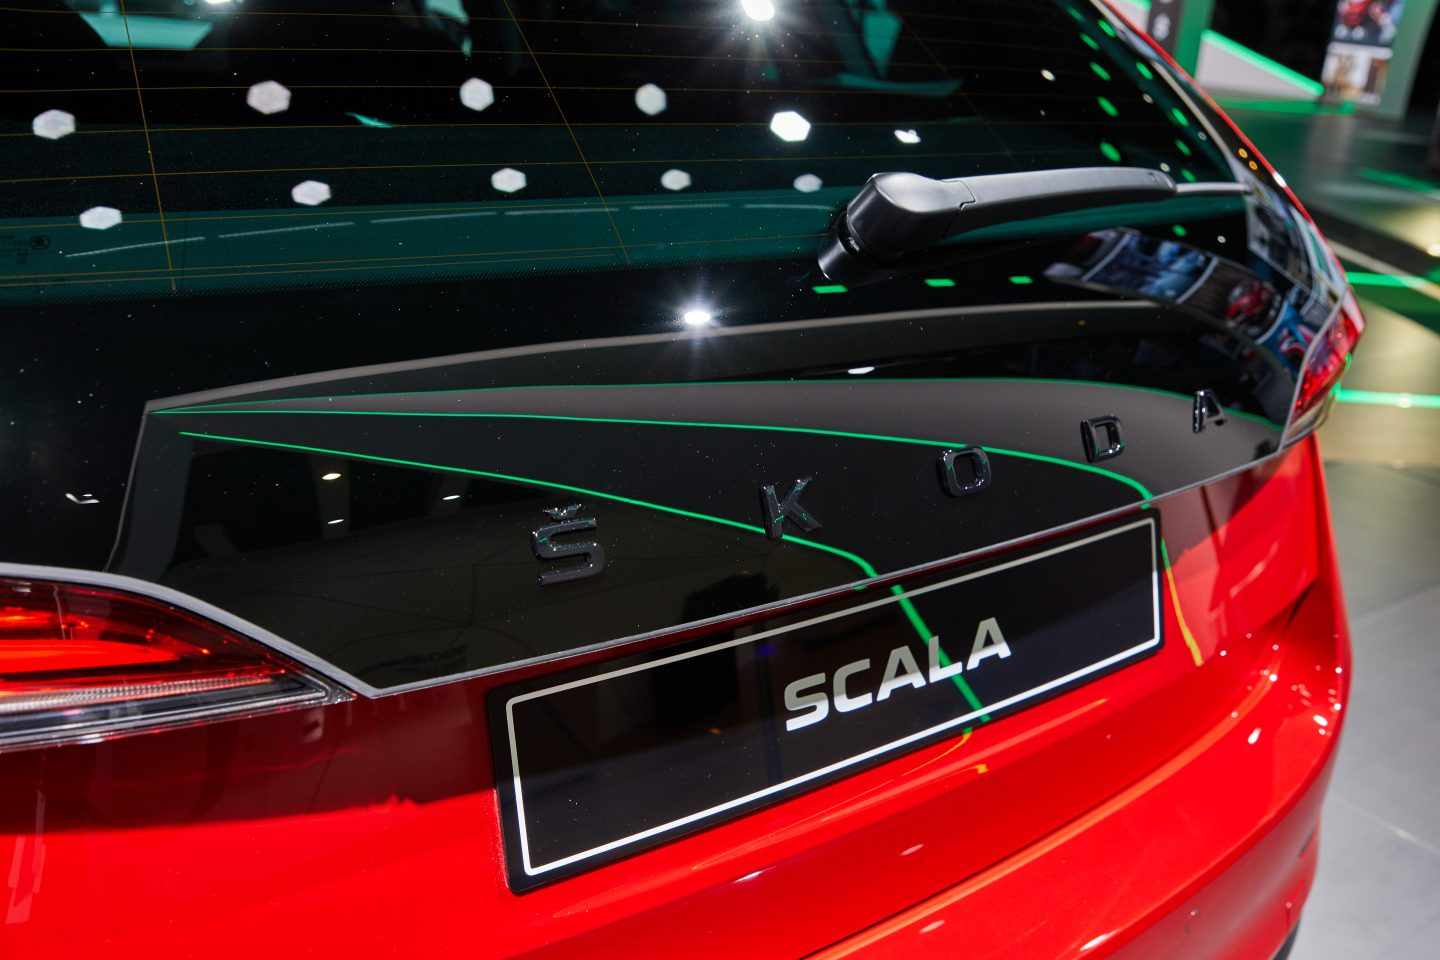 skoda-scala-letters-rear-boot-frankfurt